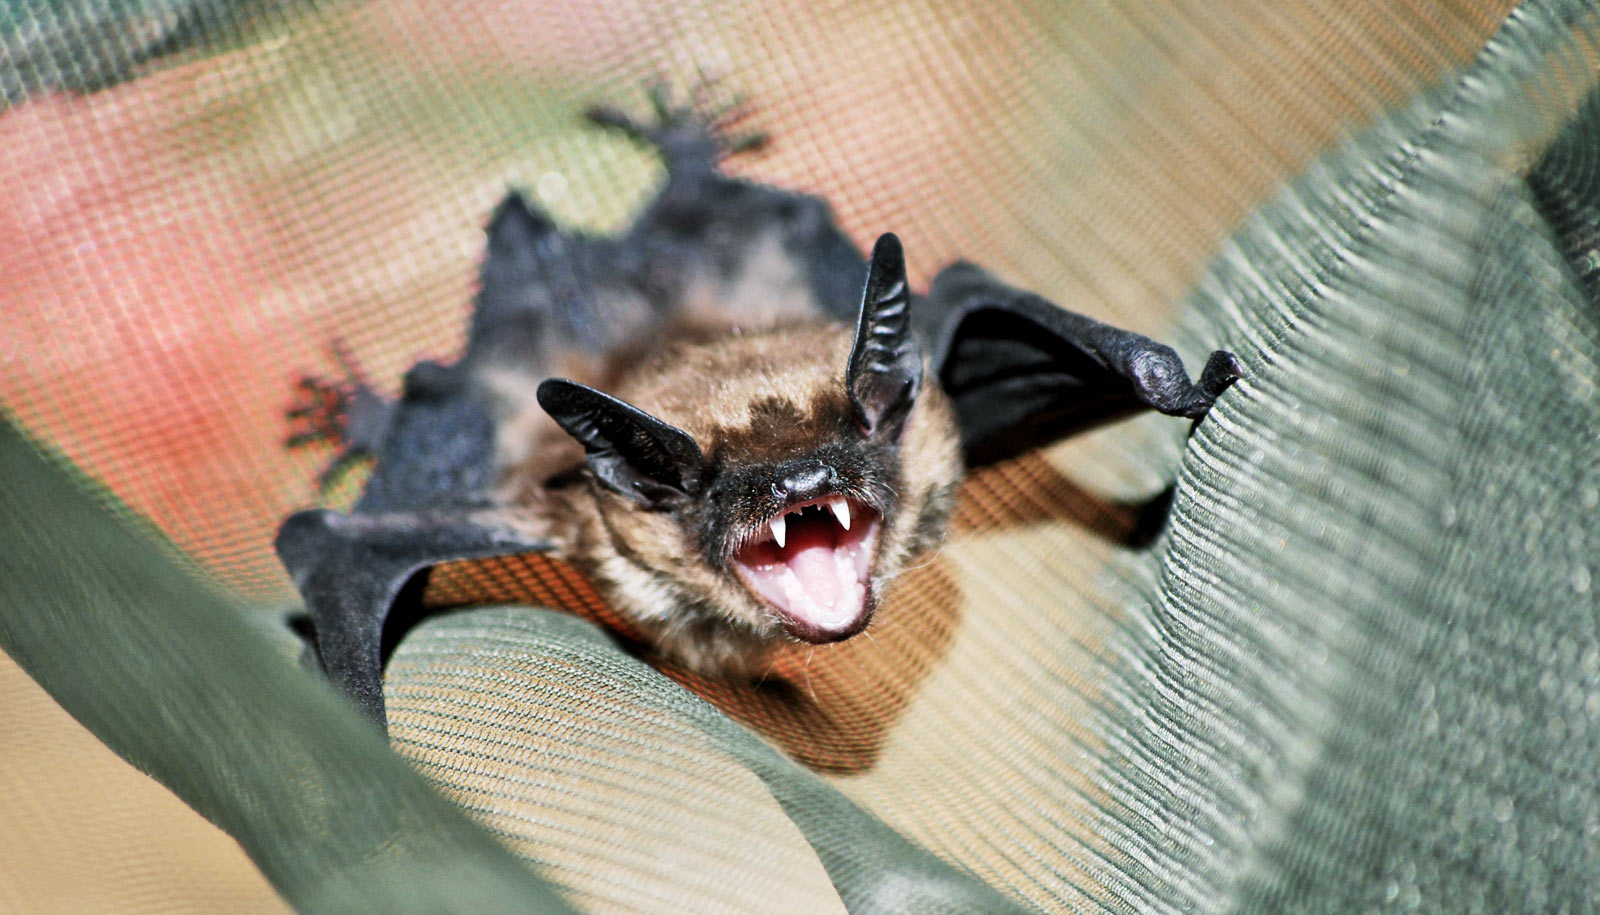 Bats can raise their voice in just 30 milliseconds - Futurity